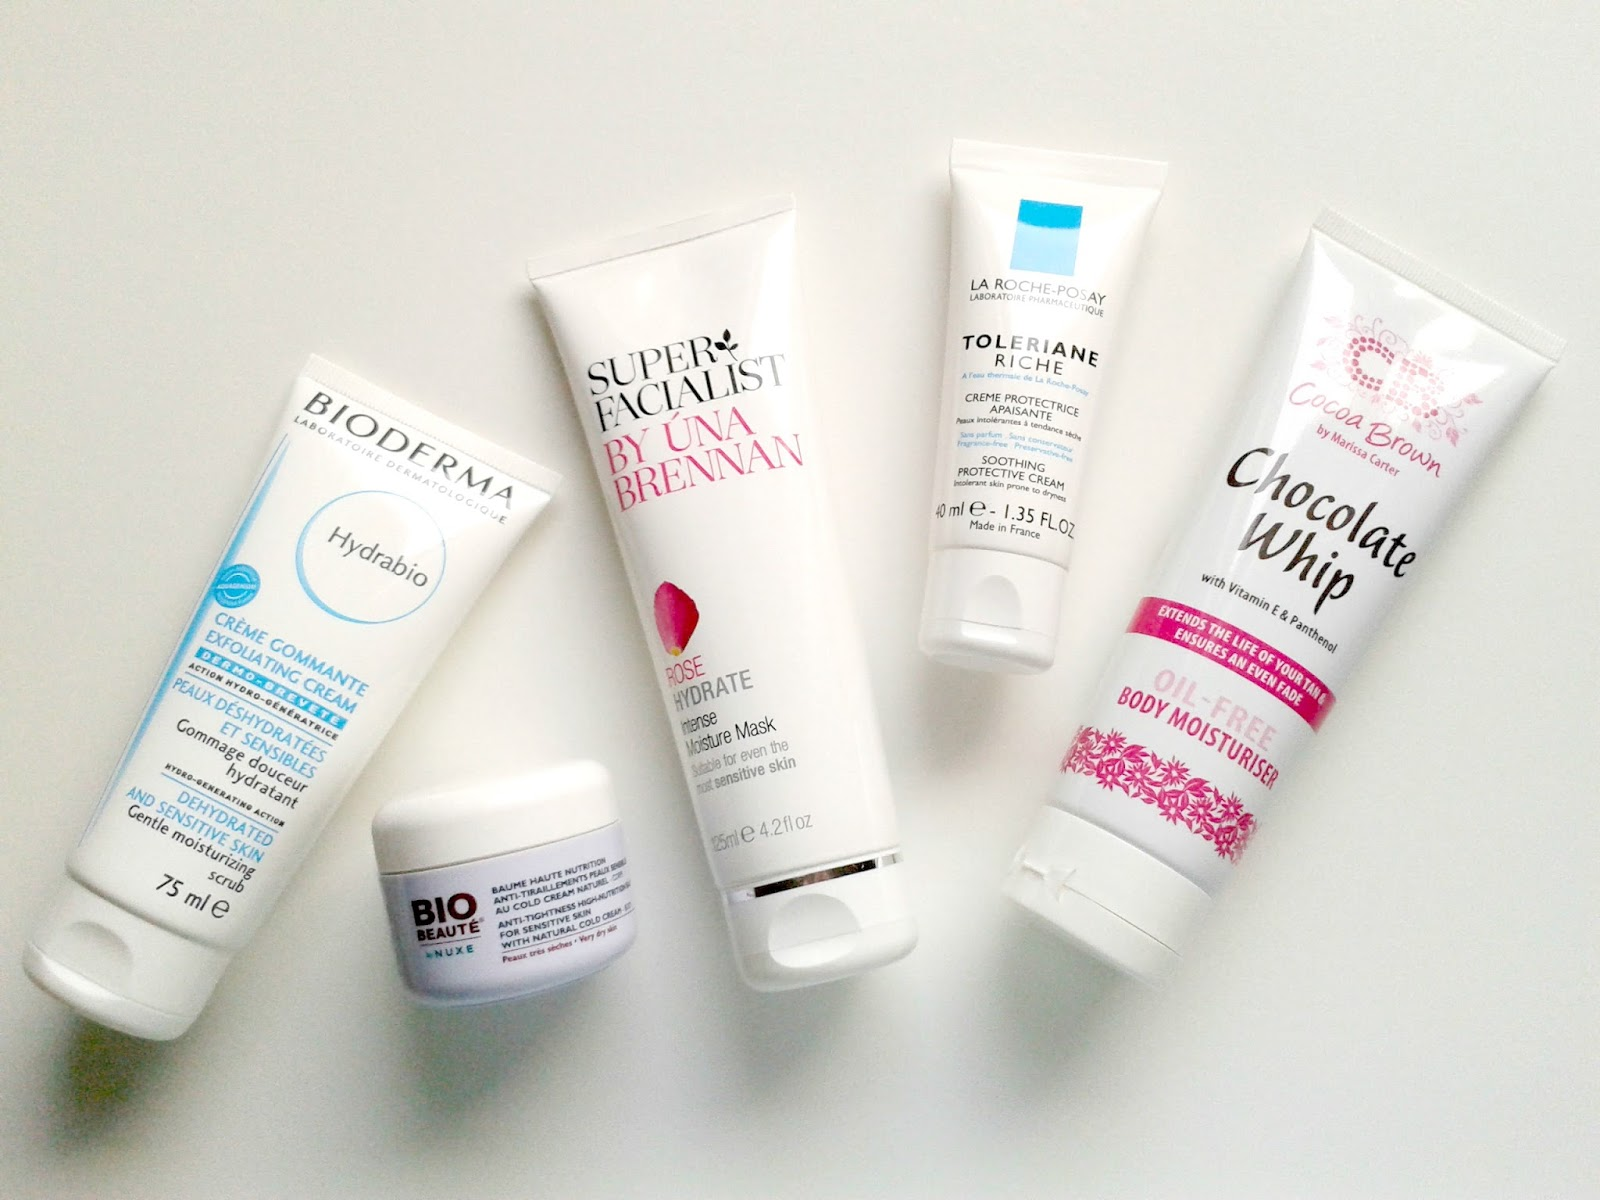 Dry Skin Products Cocoa Brown La Roche-Posay Bioderma Bio Beaute by Nuxe Super Facialist by Una Brennan